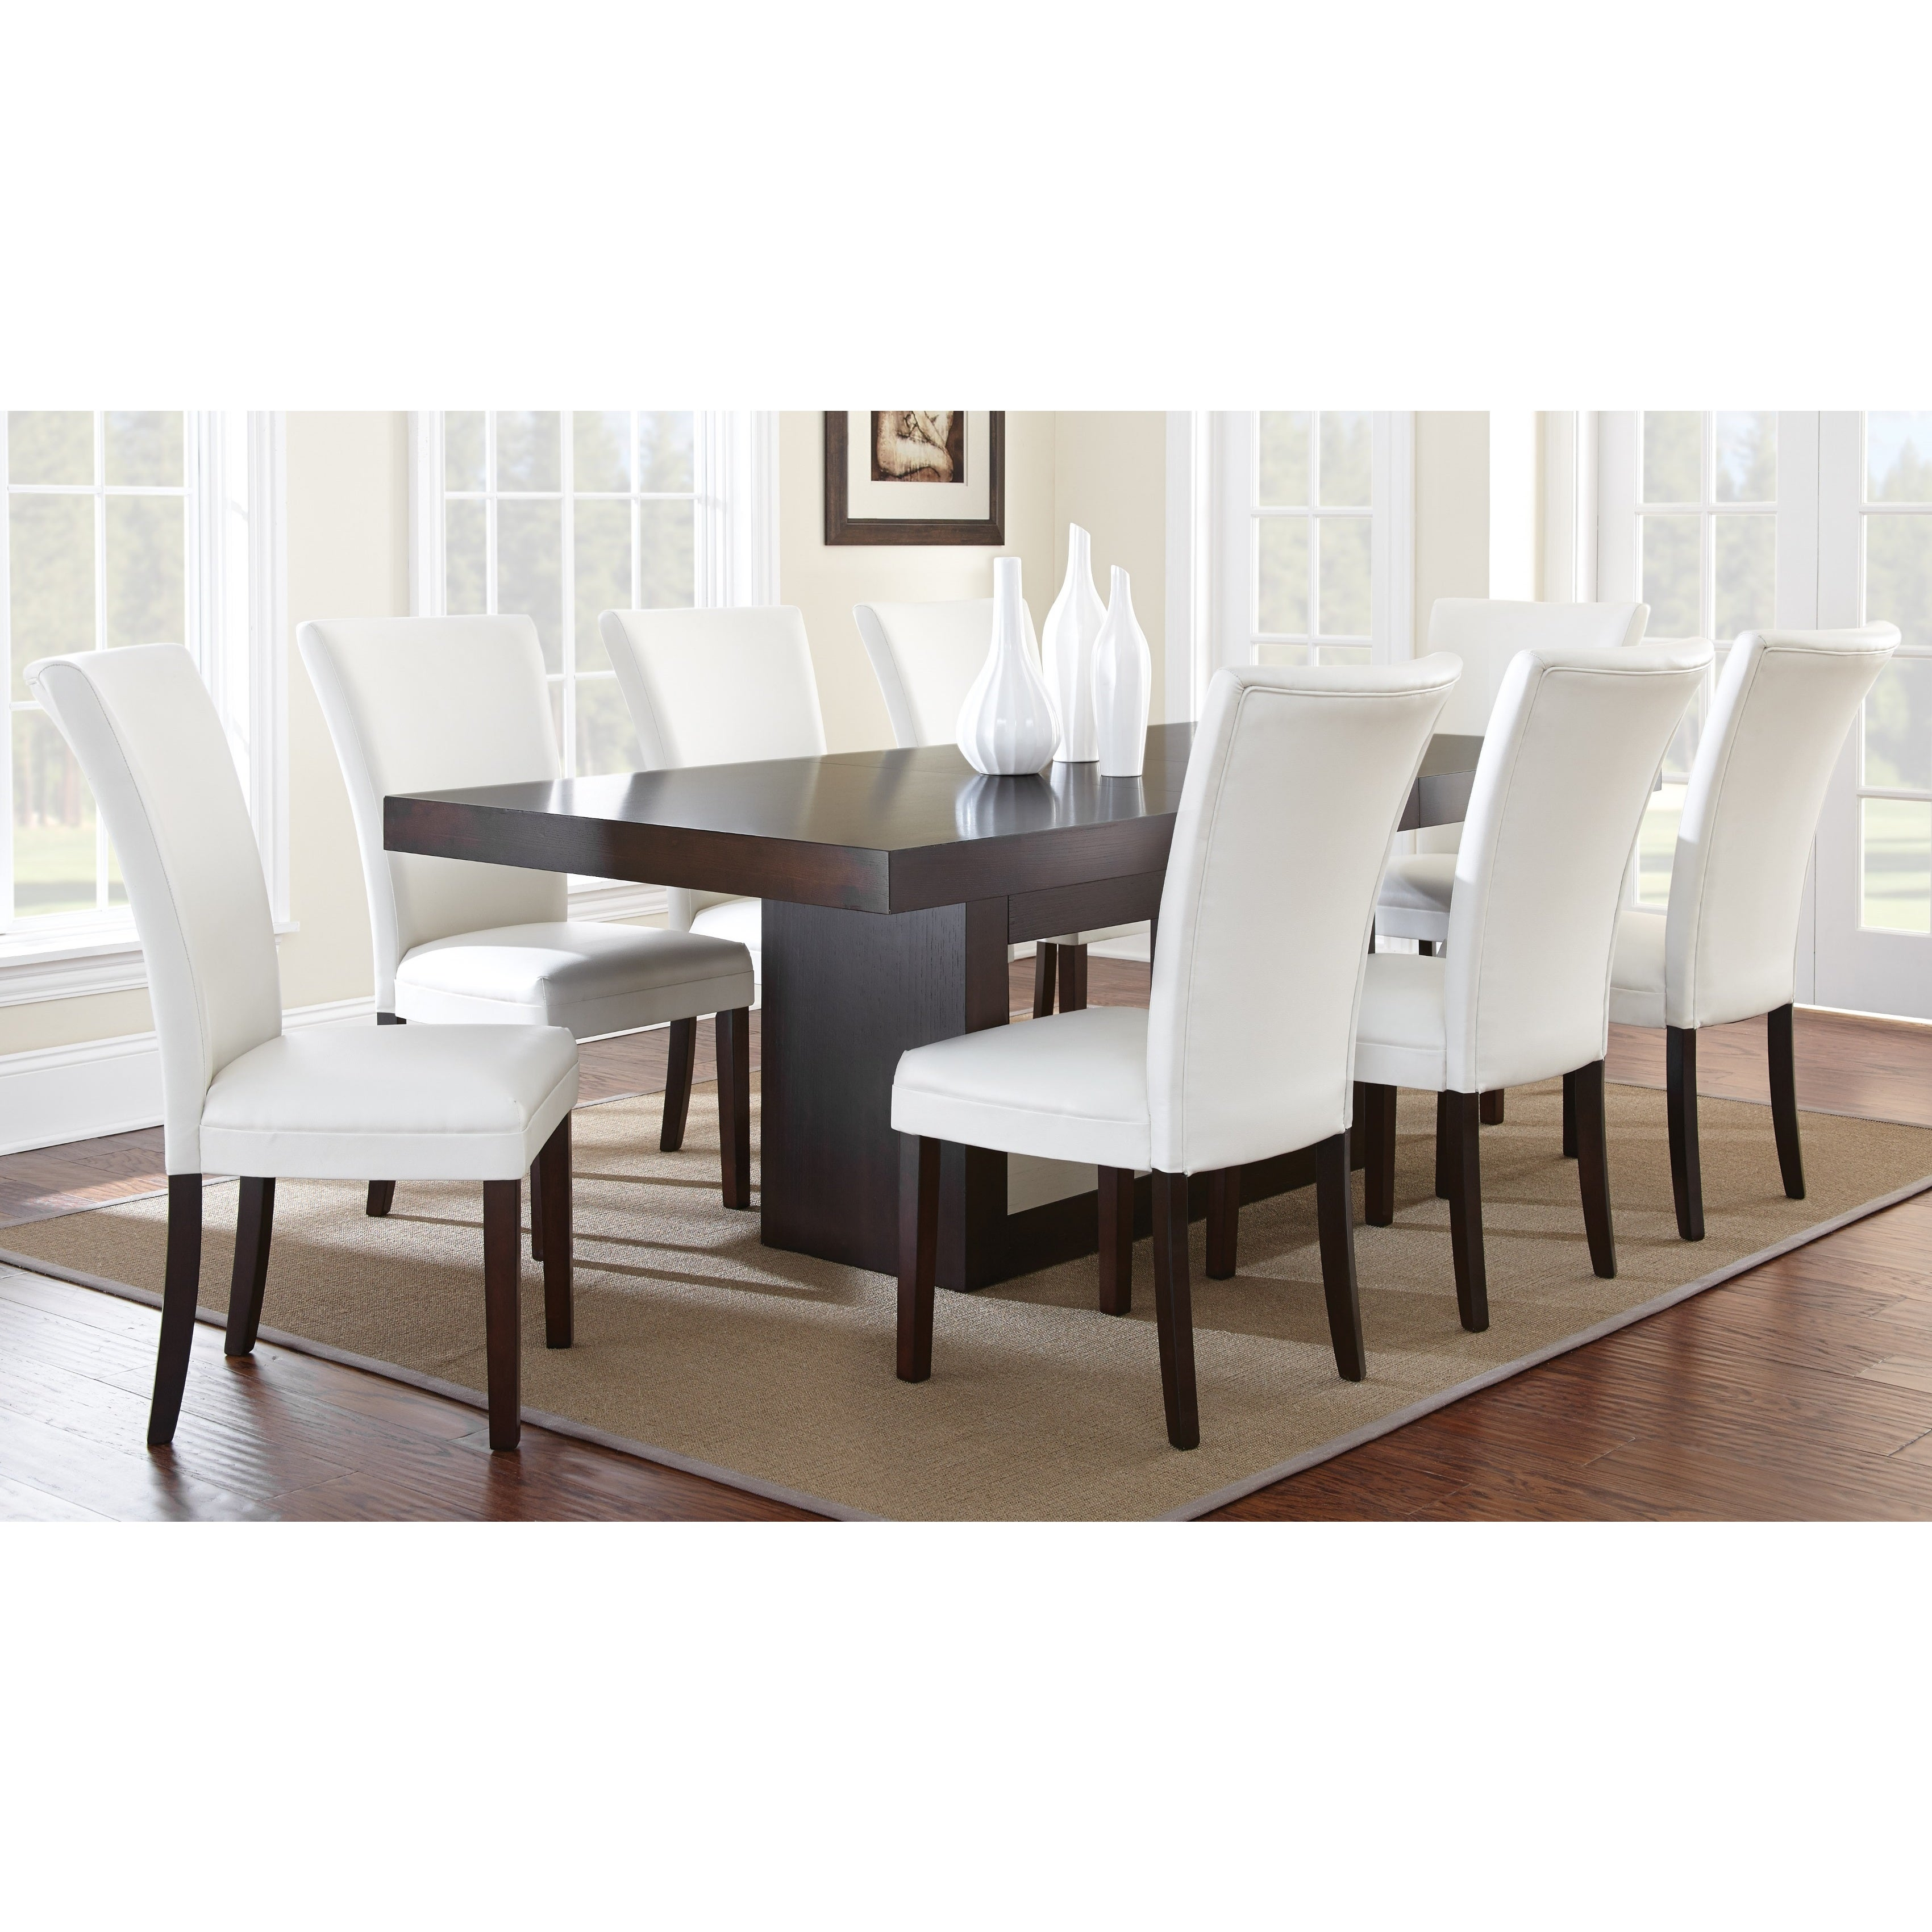 Amia Dining Set By Greyson Living Overstock 10809379